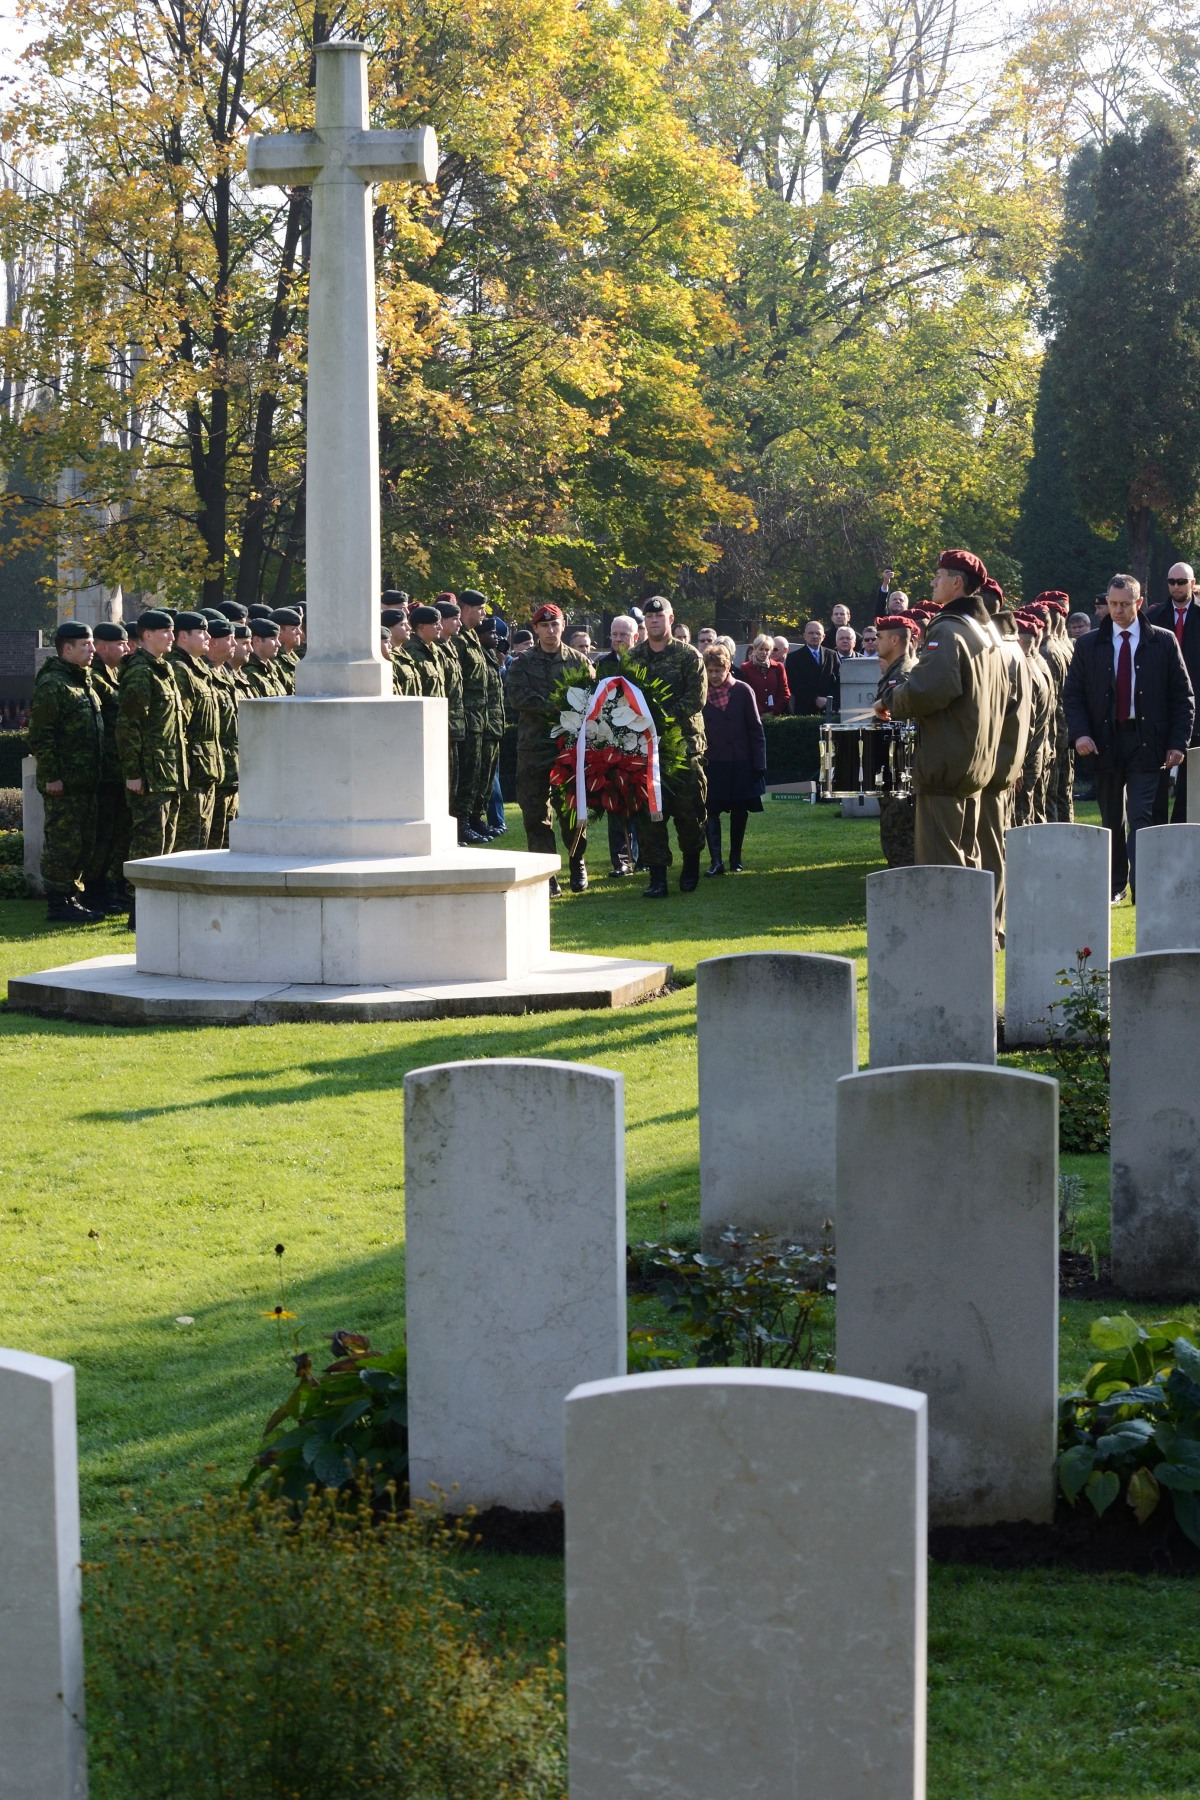 The ceremony honoured fallen soldiers of WWII, including Canadian soldiers and pilots.